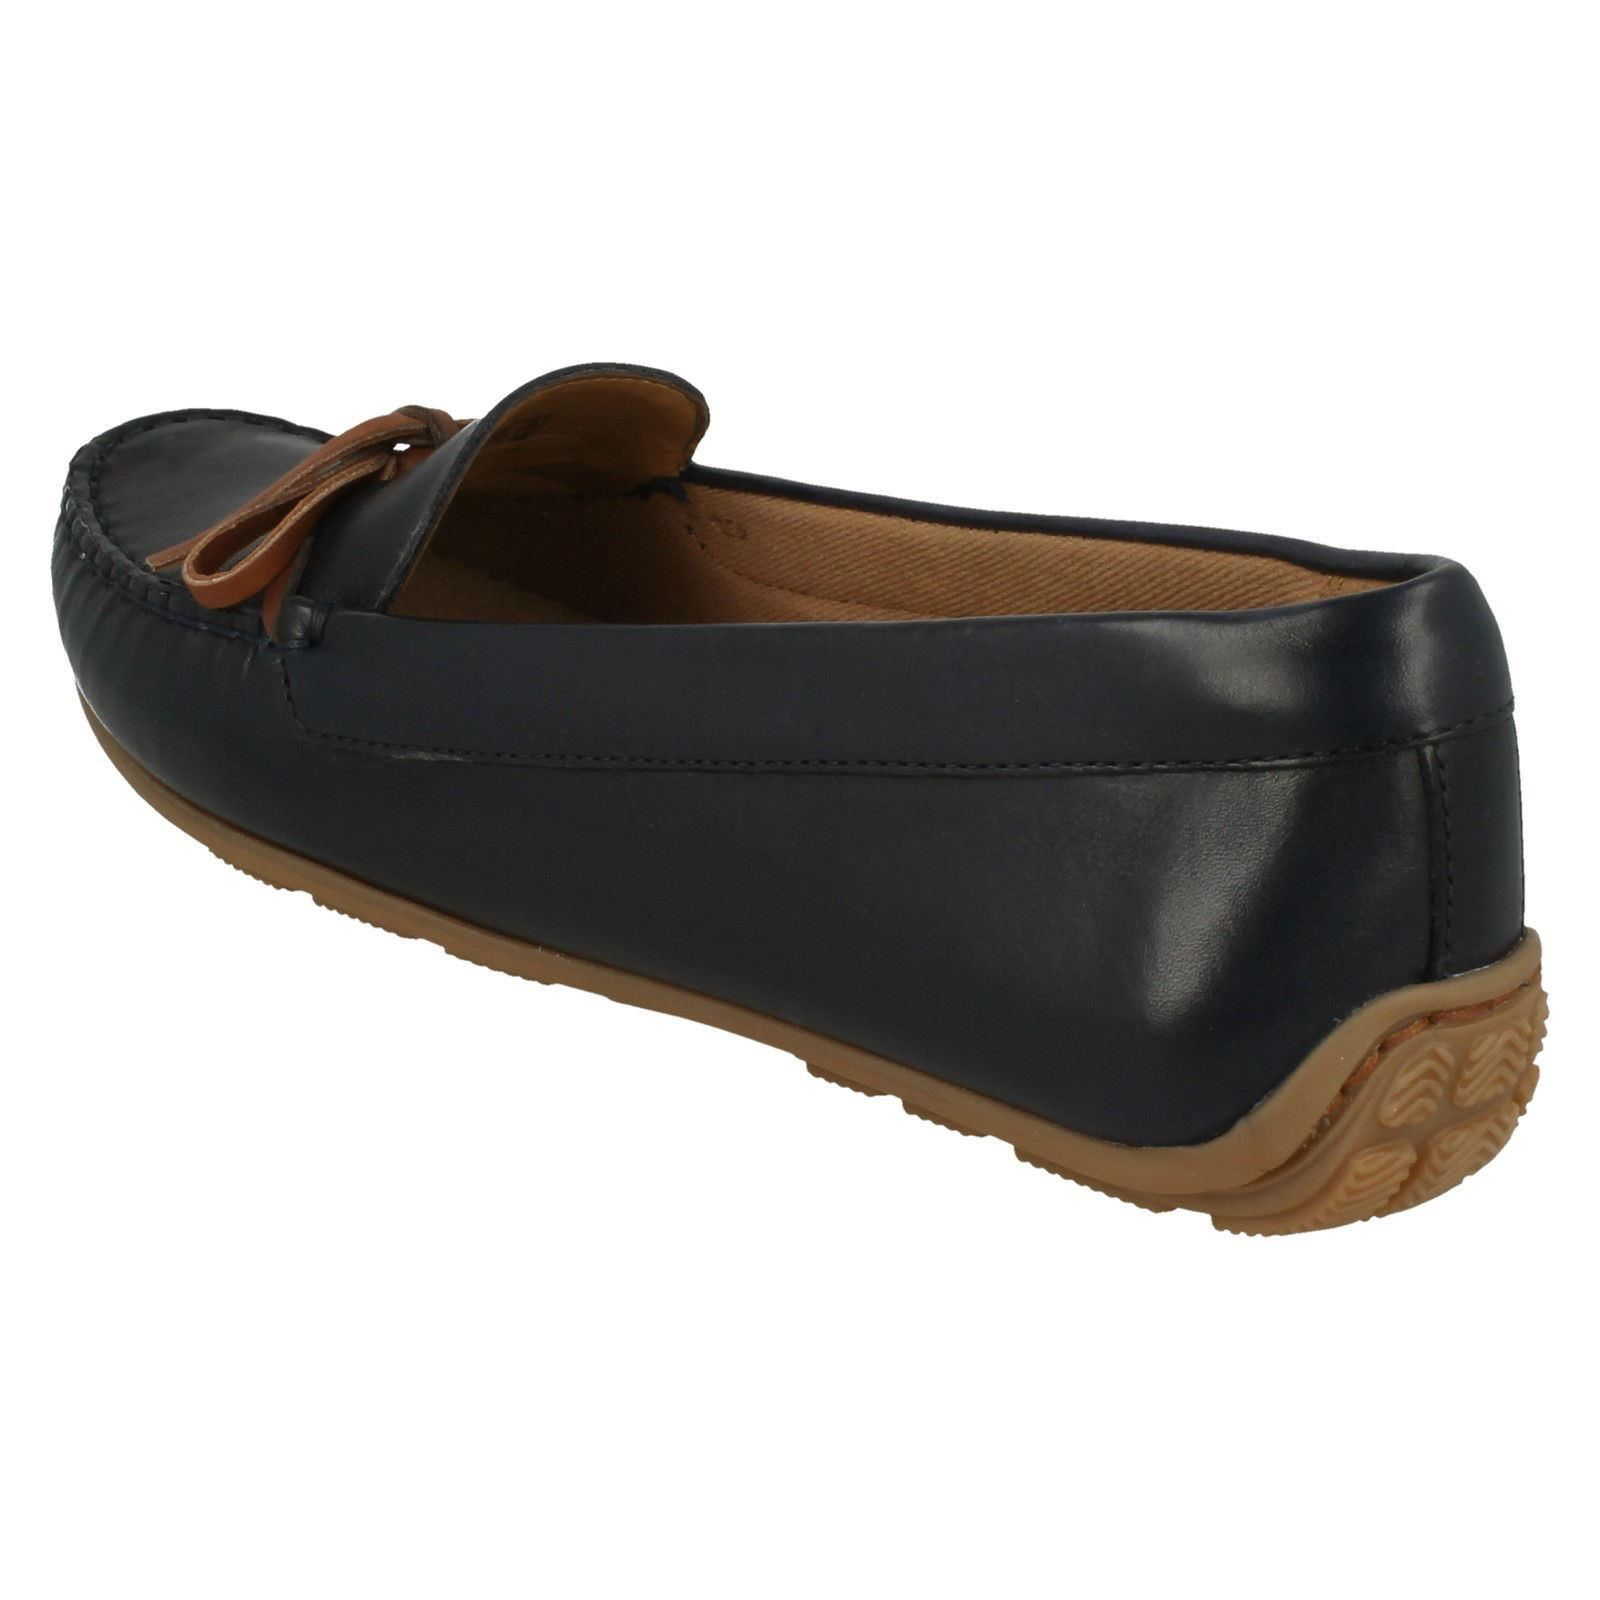 Ladies Clarks Leather Slip On Loafer Moccasin Style Shoes Dameo Swing